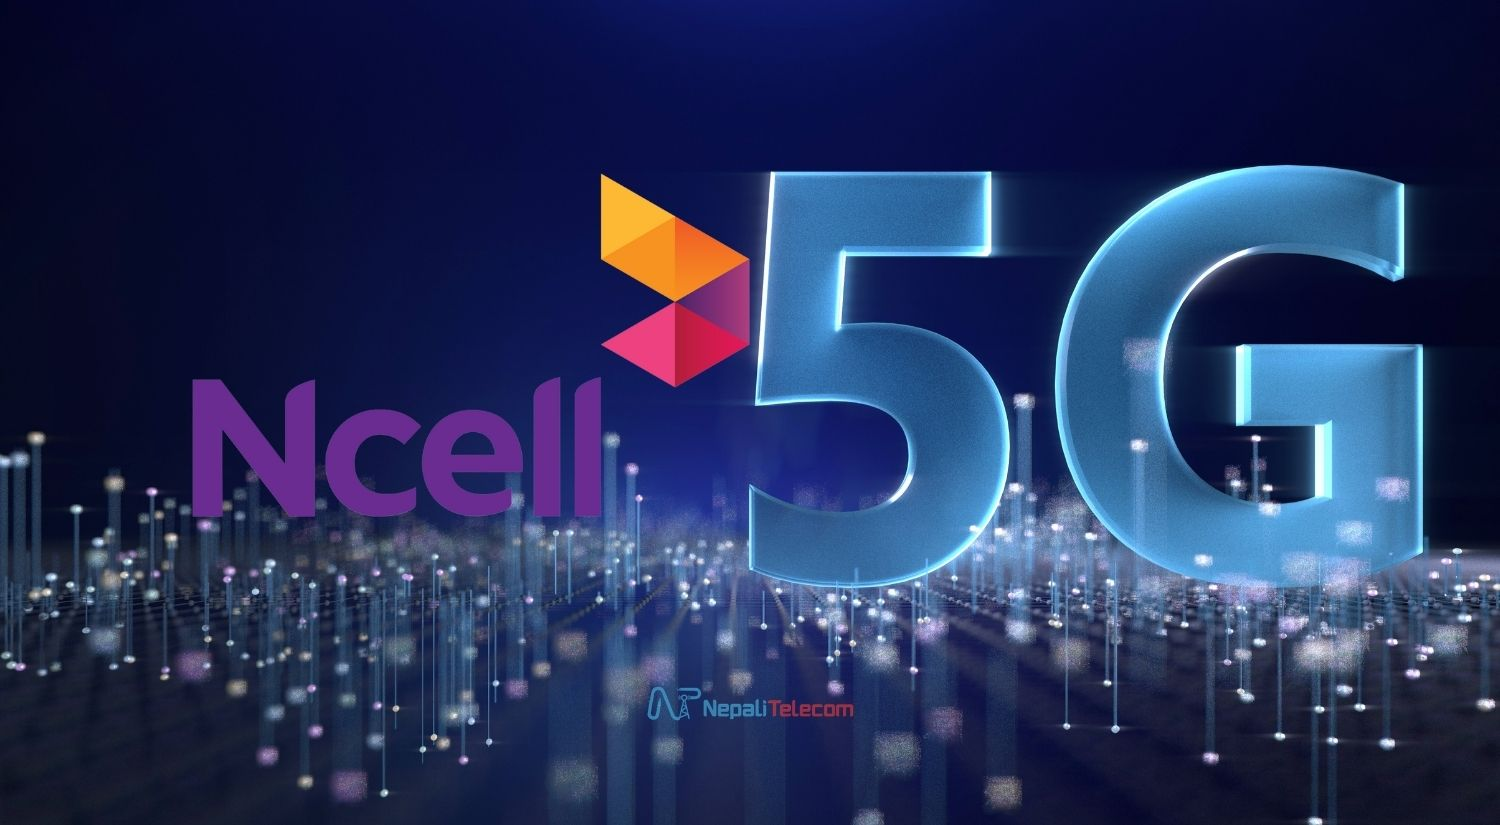 Ncell 5G